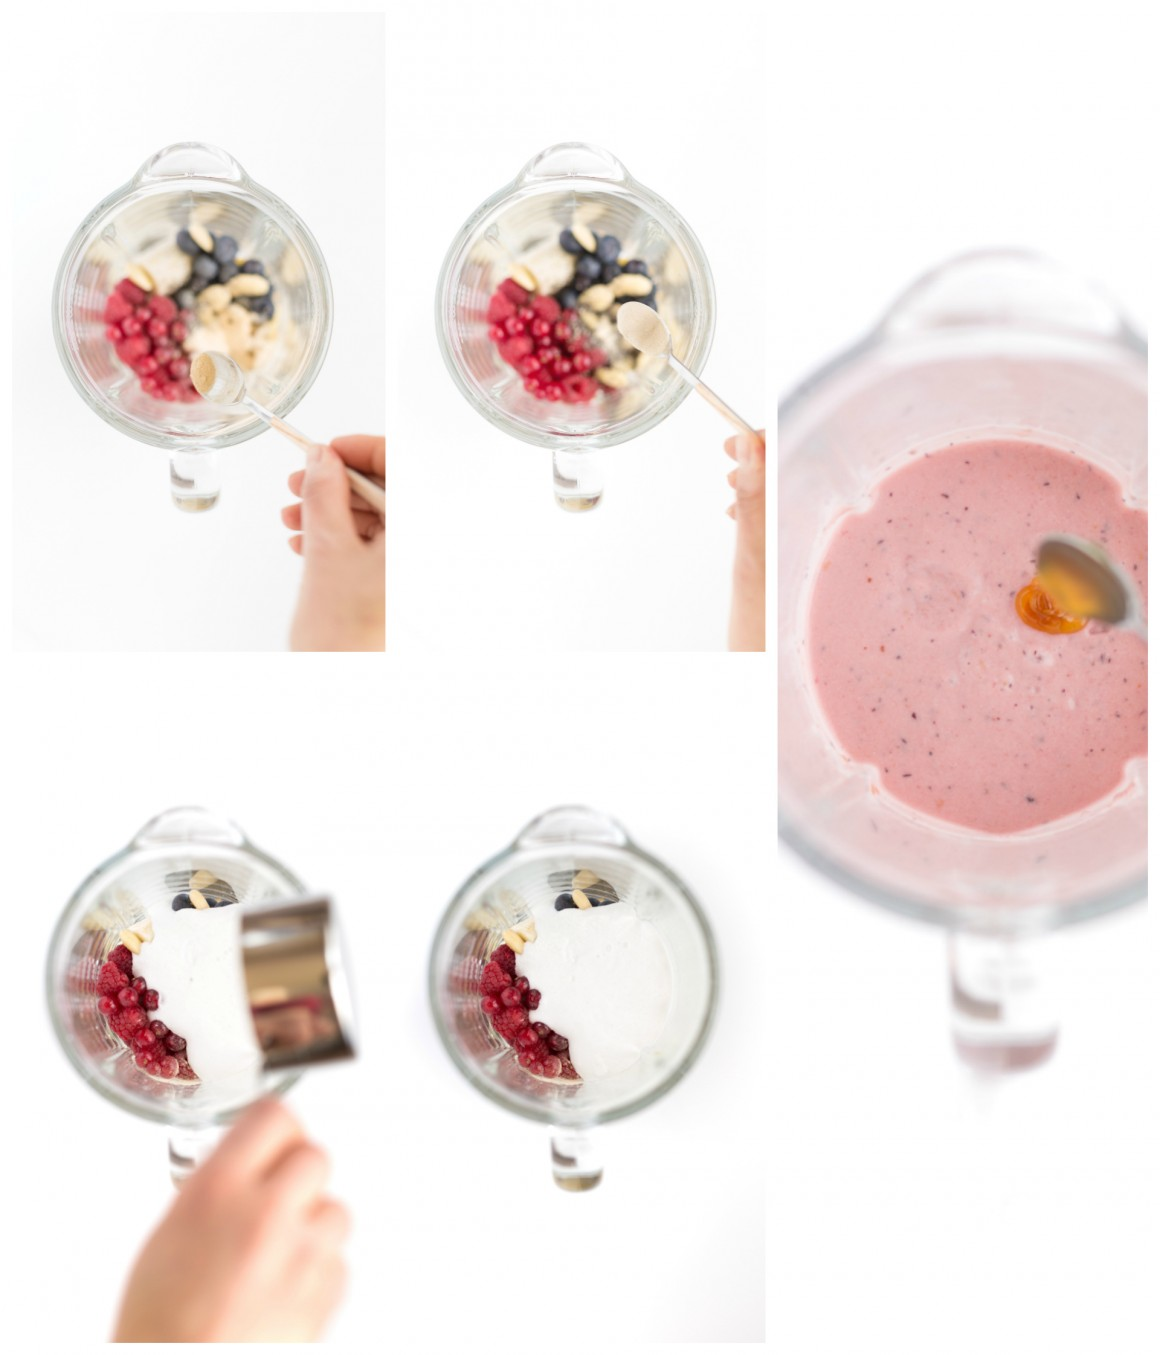 smoothie bowl ai lamponi e frutti di bosco come preparare